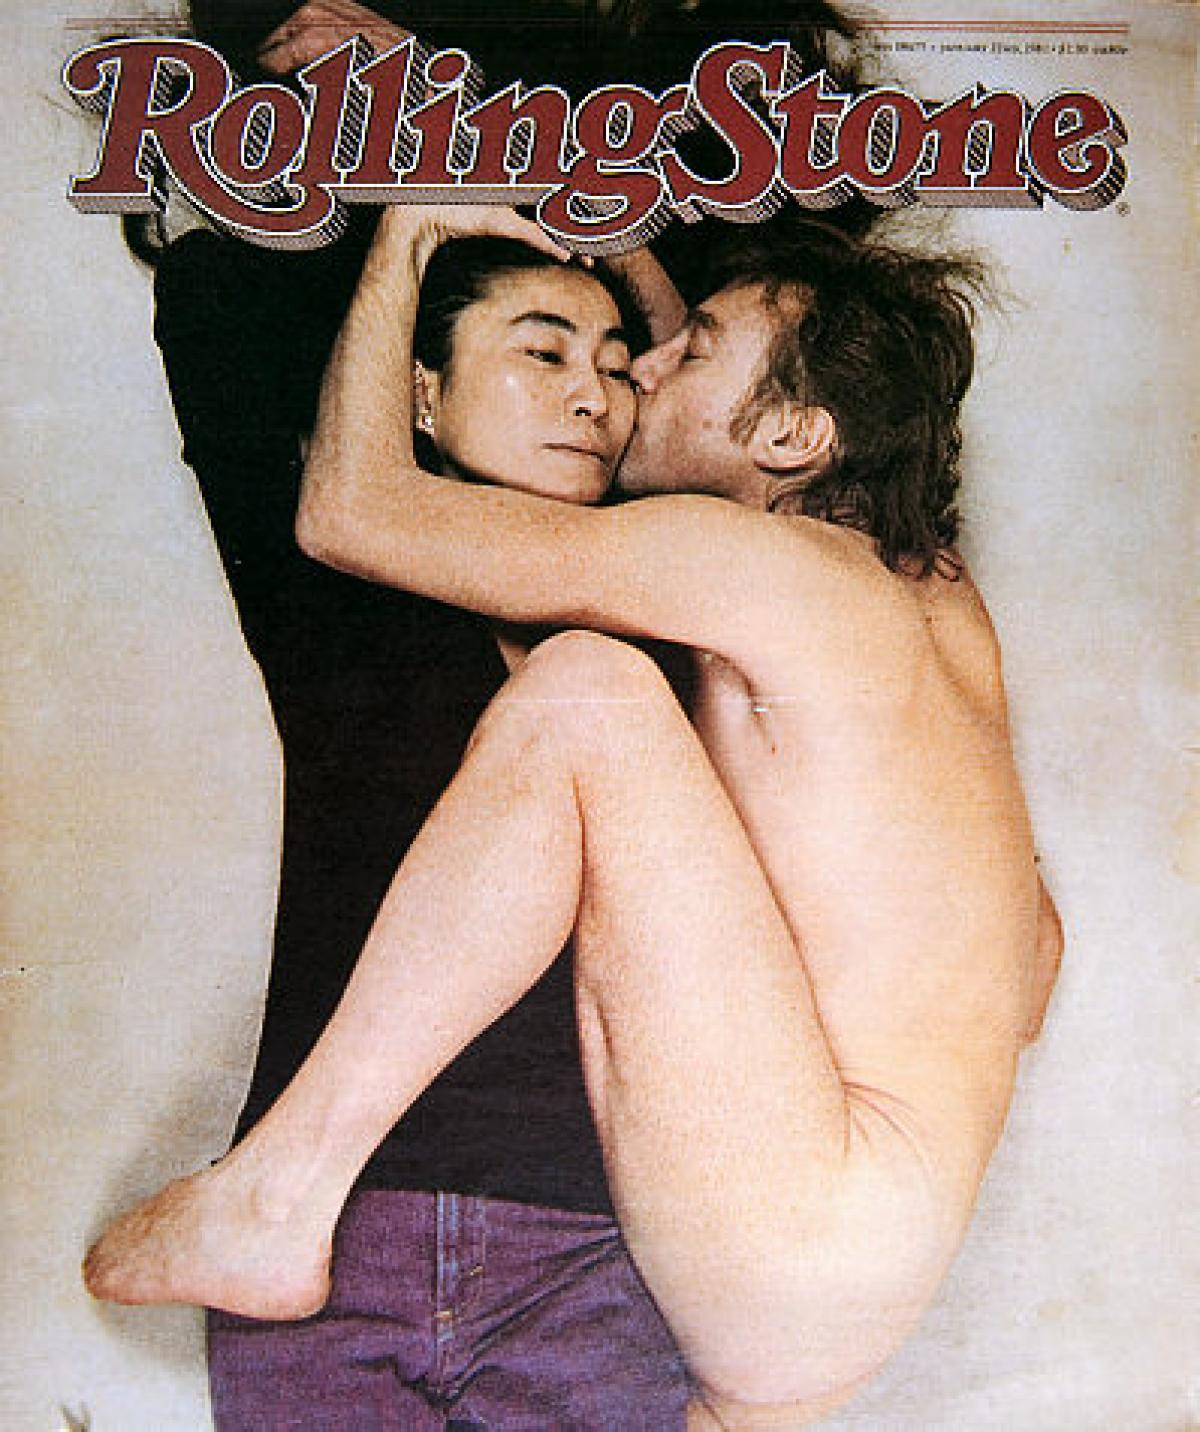 John Lennon & Yoko Ono photographed by Annie Leibovitz for Rolling Stone Magazine December 8, 1980